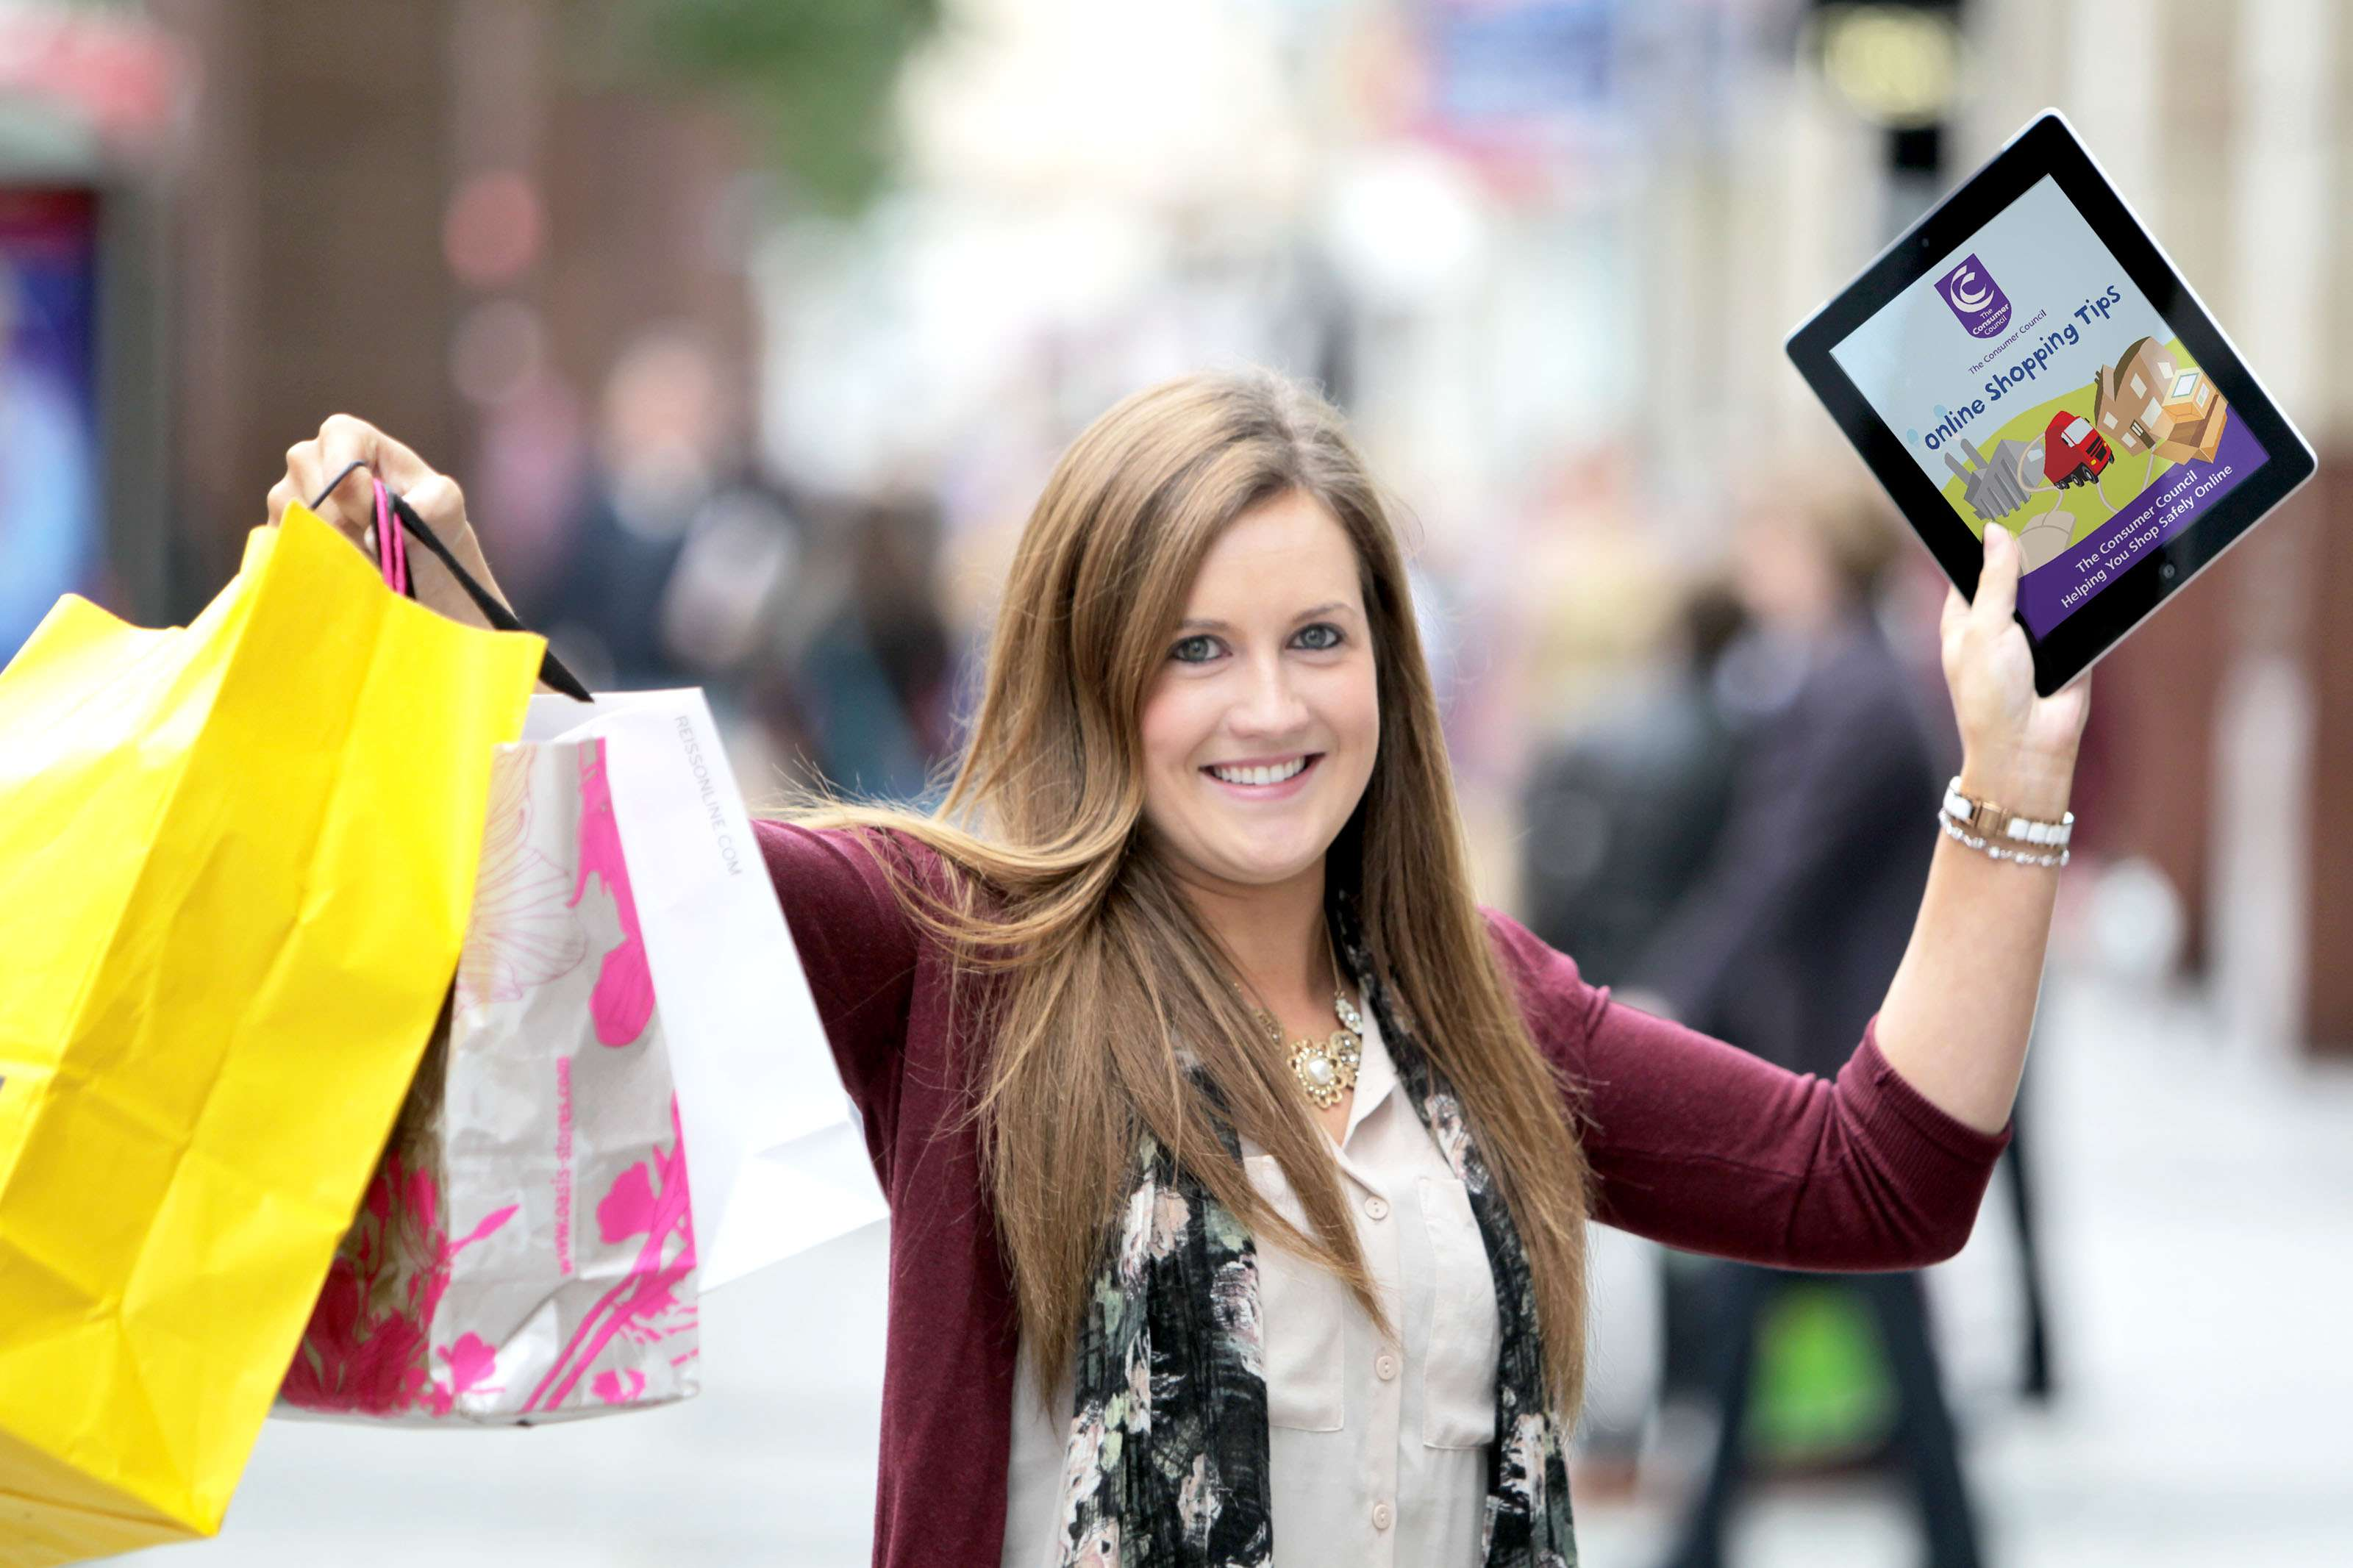 dissertation on online shopping Online shopping and how this entices them to shop online in a south african context i aim to investigate people's motives for preferring to shop online, as well as their reasons for doing so.